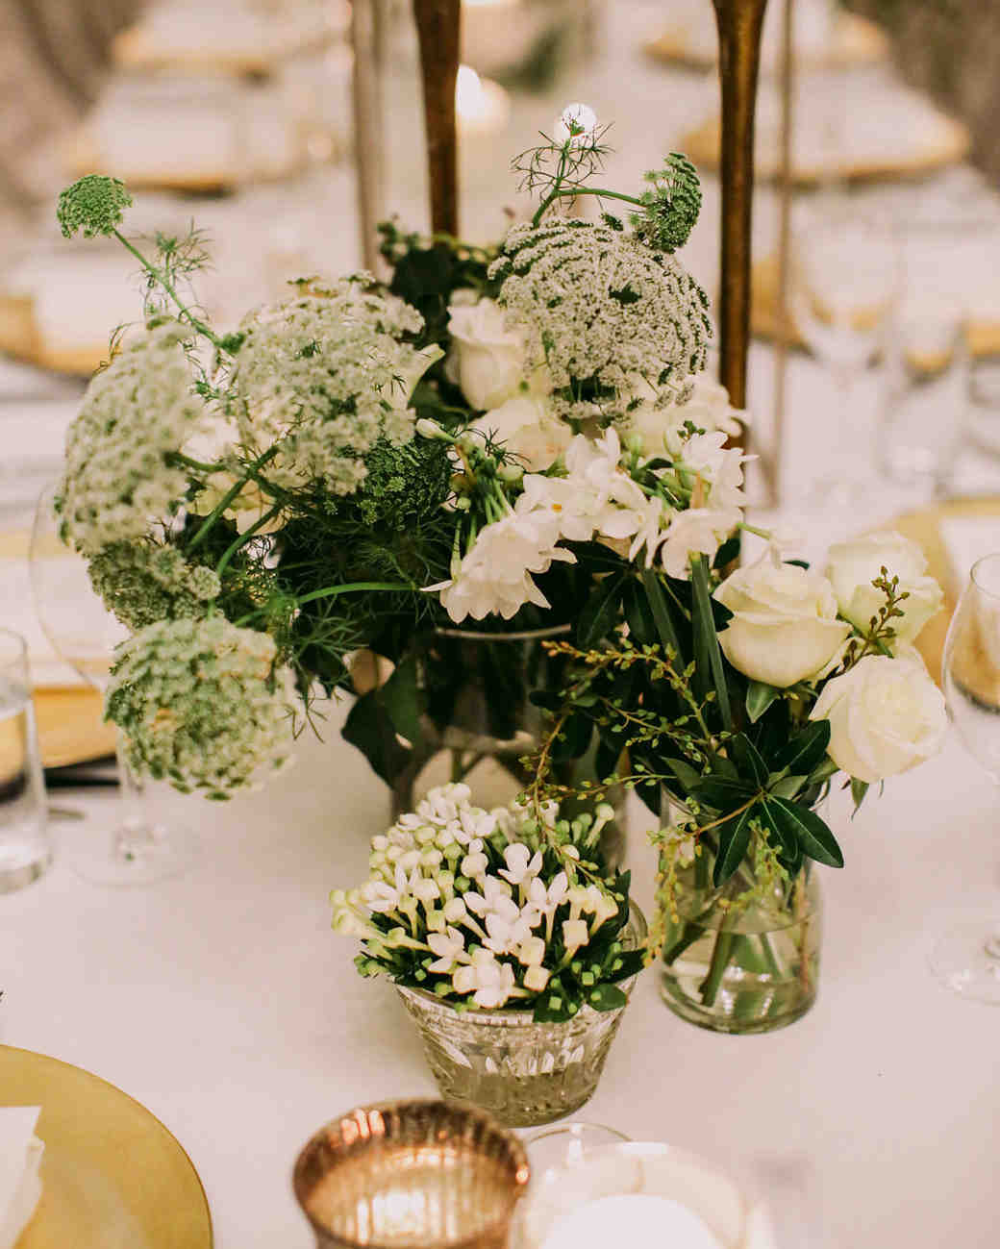 Amazing Inexpensive Centerpieces For Weddings Father Of Trust Designs In 2020 White Wedding Centerpieces Affordable Wedding Centerpieces Flower Centerpieces Wedding